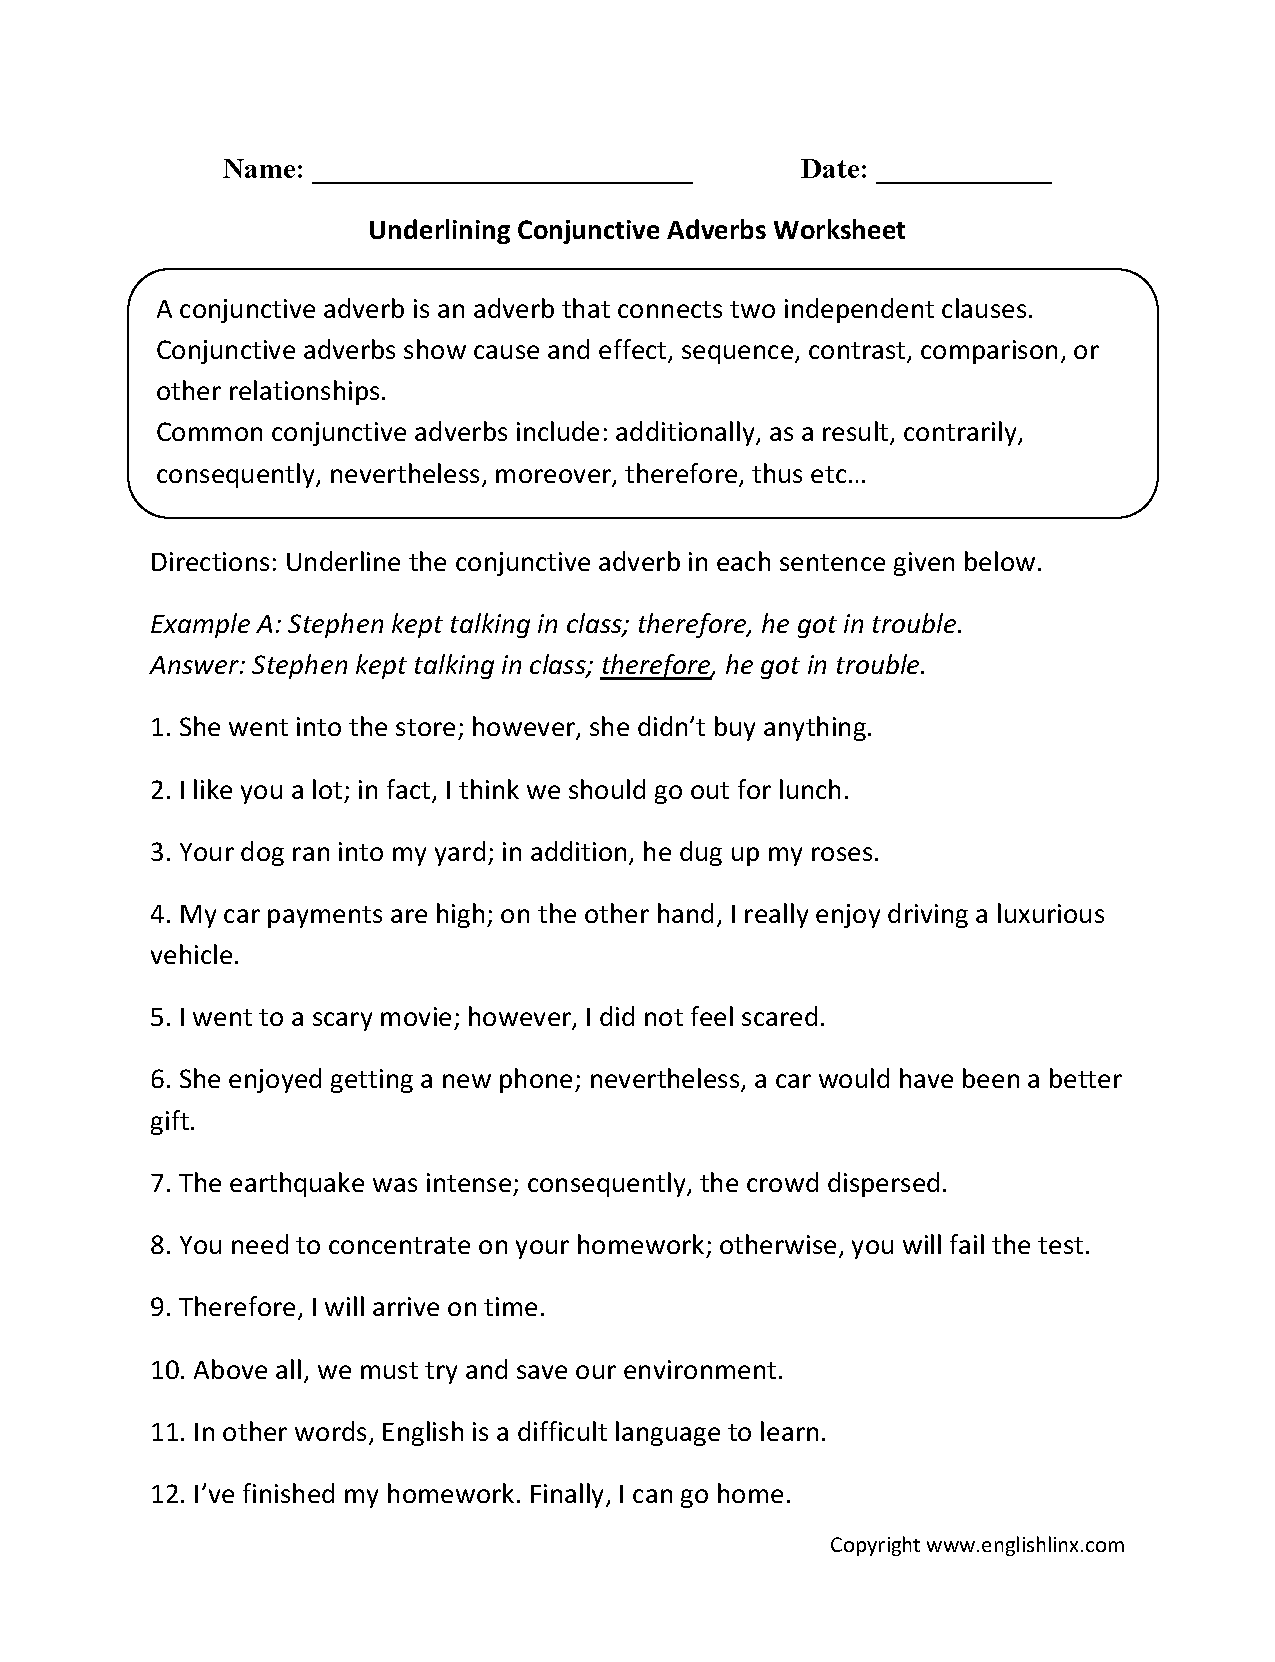 Conjunctions Worksheets | Underlining Conjunctive Adverbs Worksheet